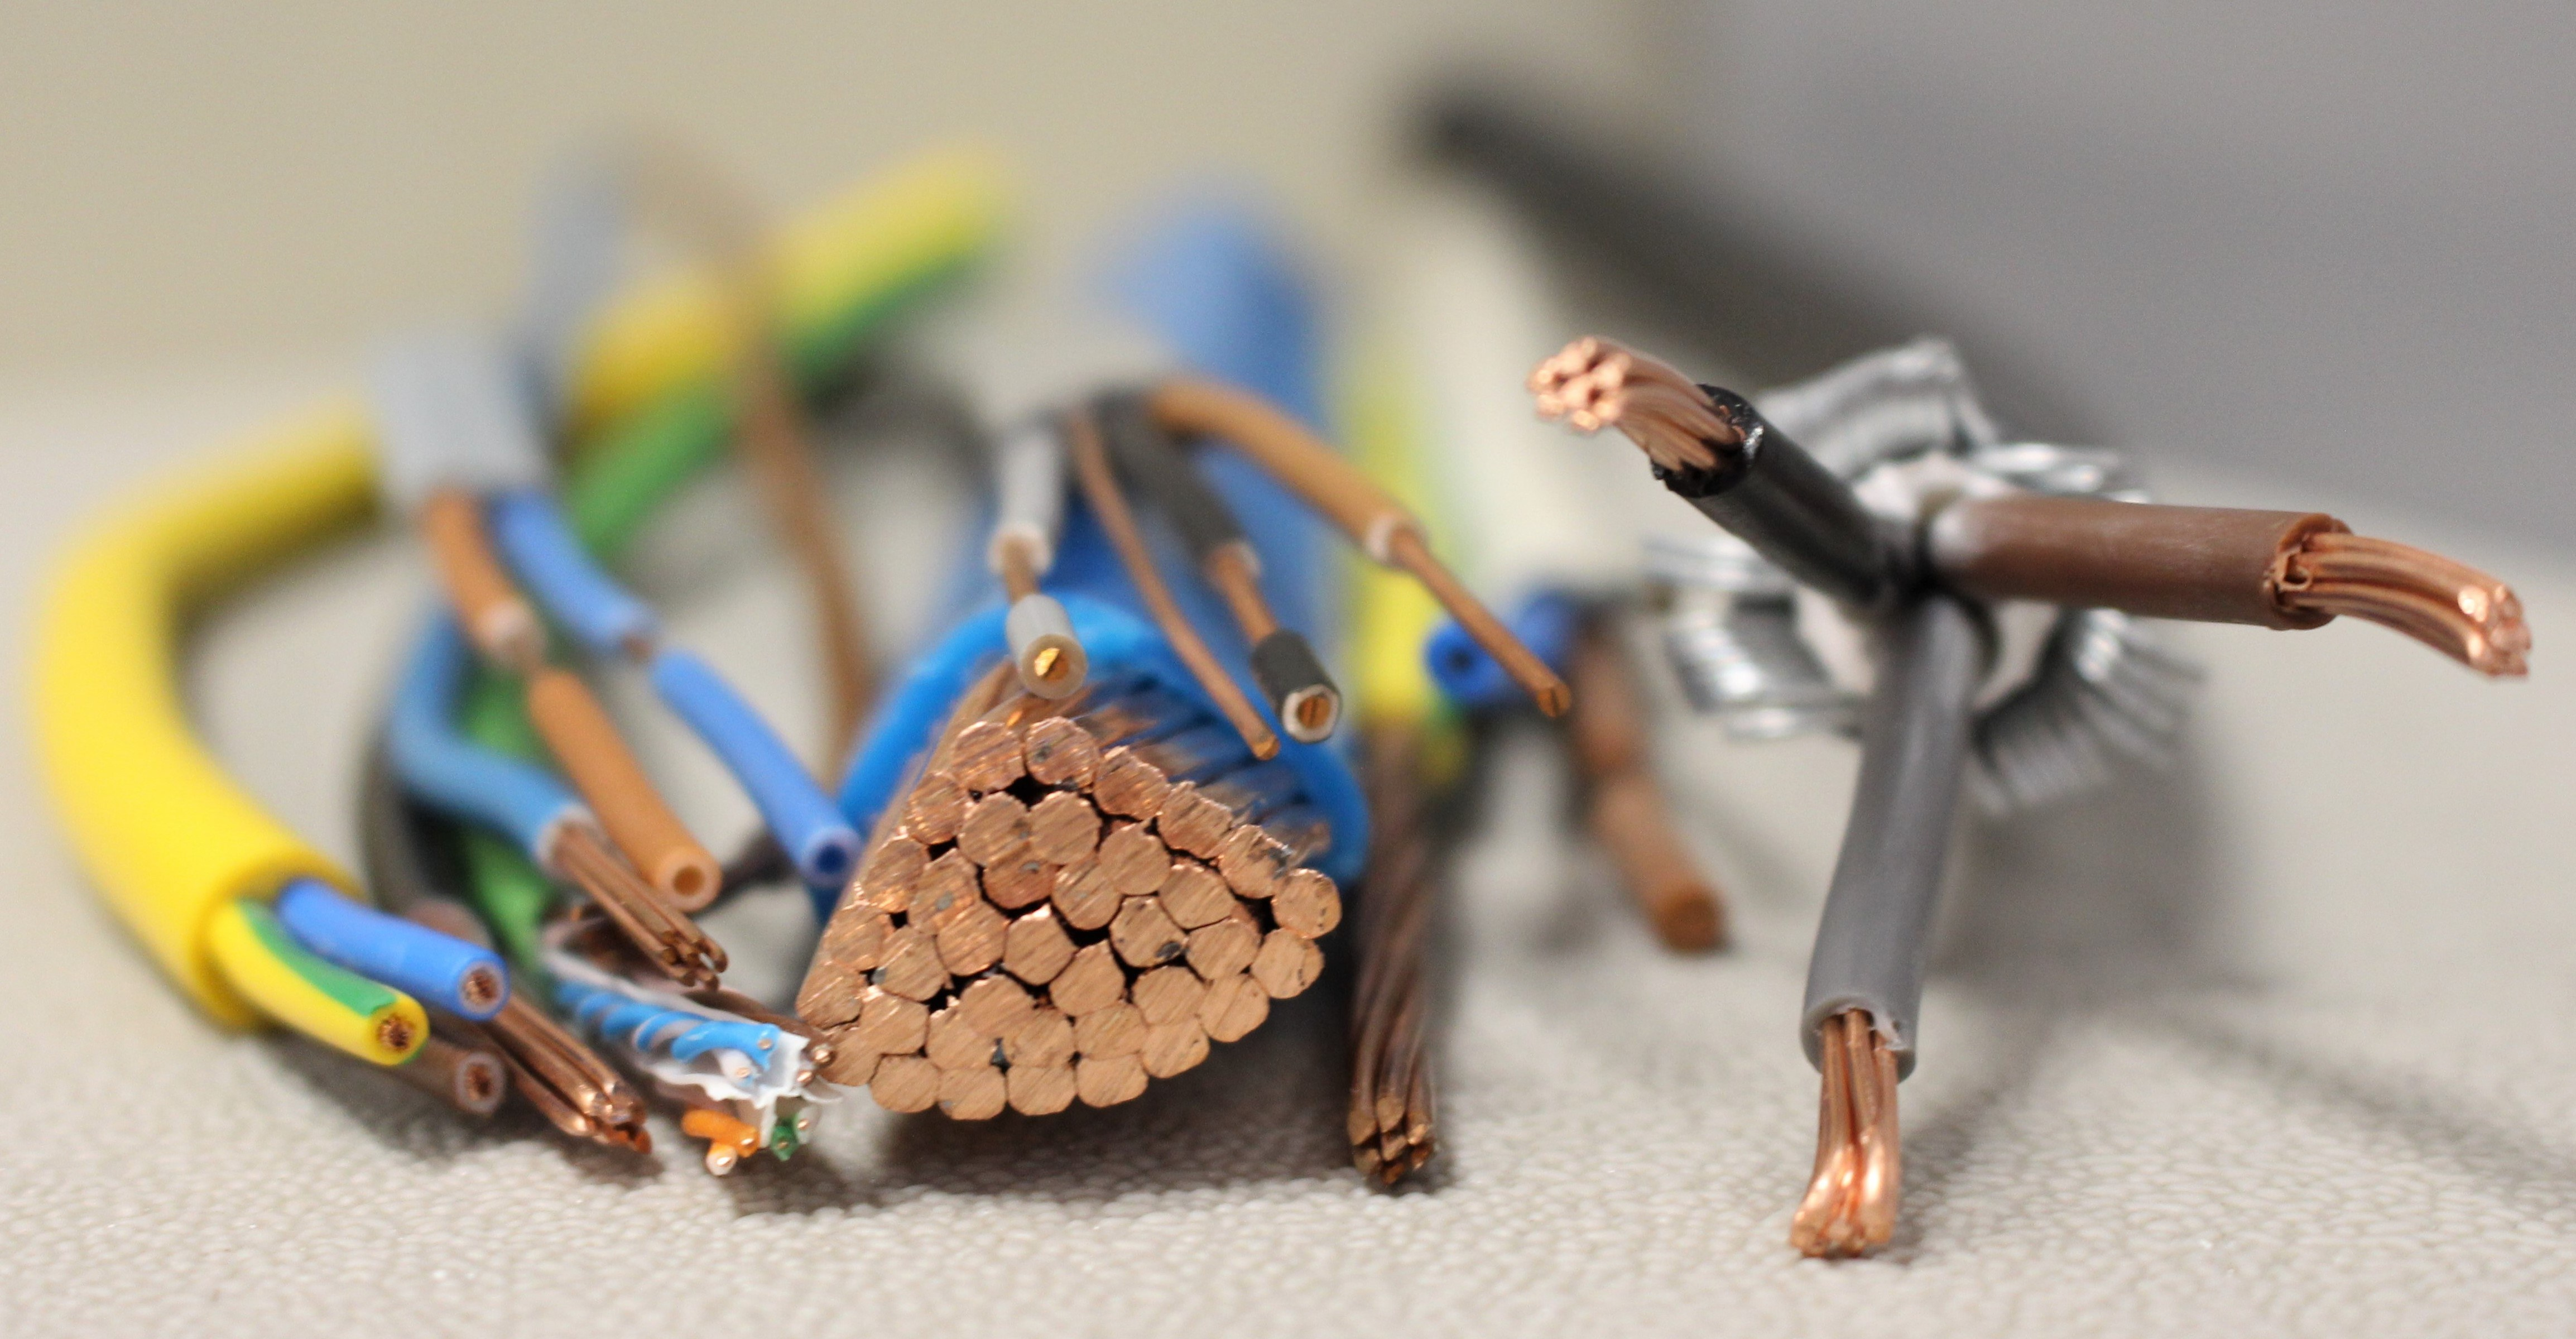 Selection-of-cables-edited.jpg